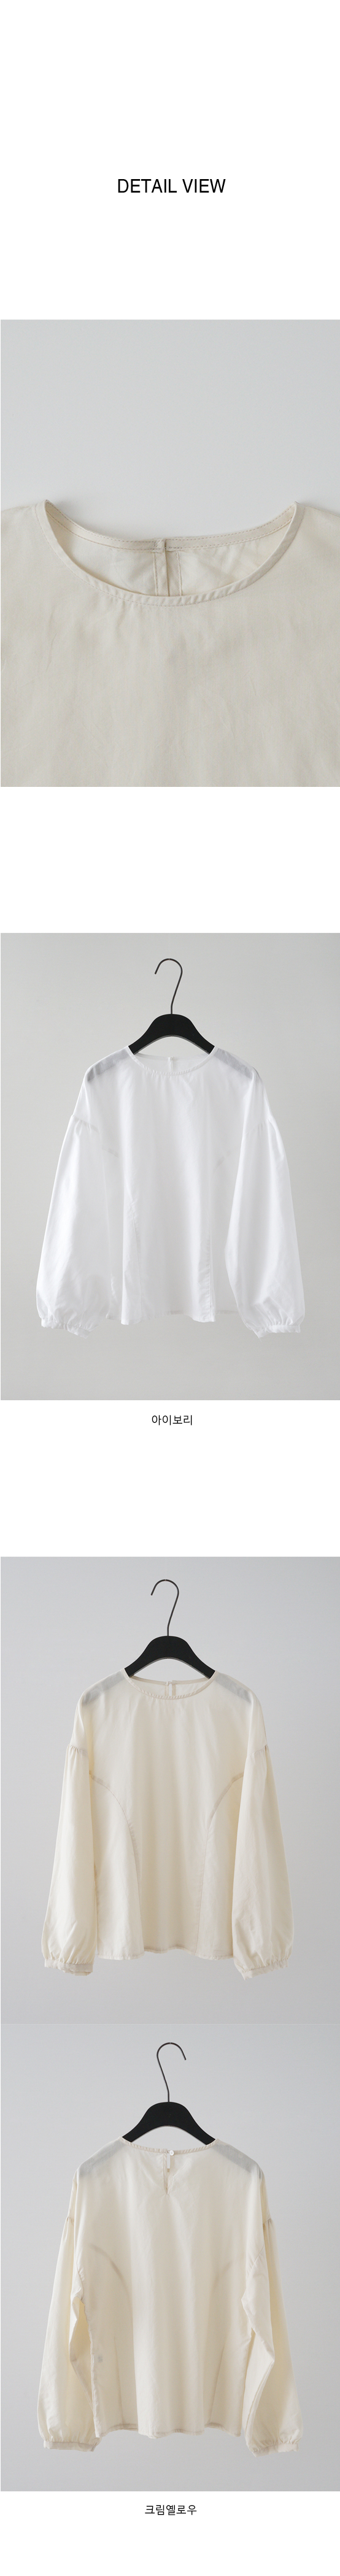 round silhouette blouse